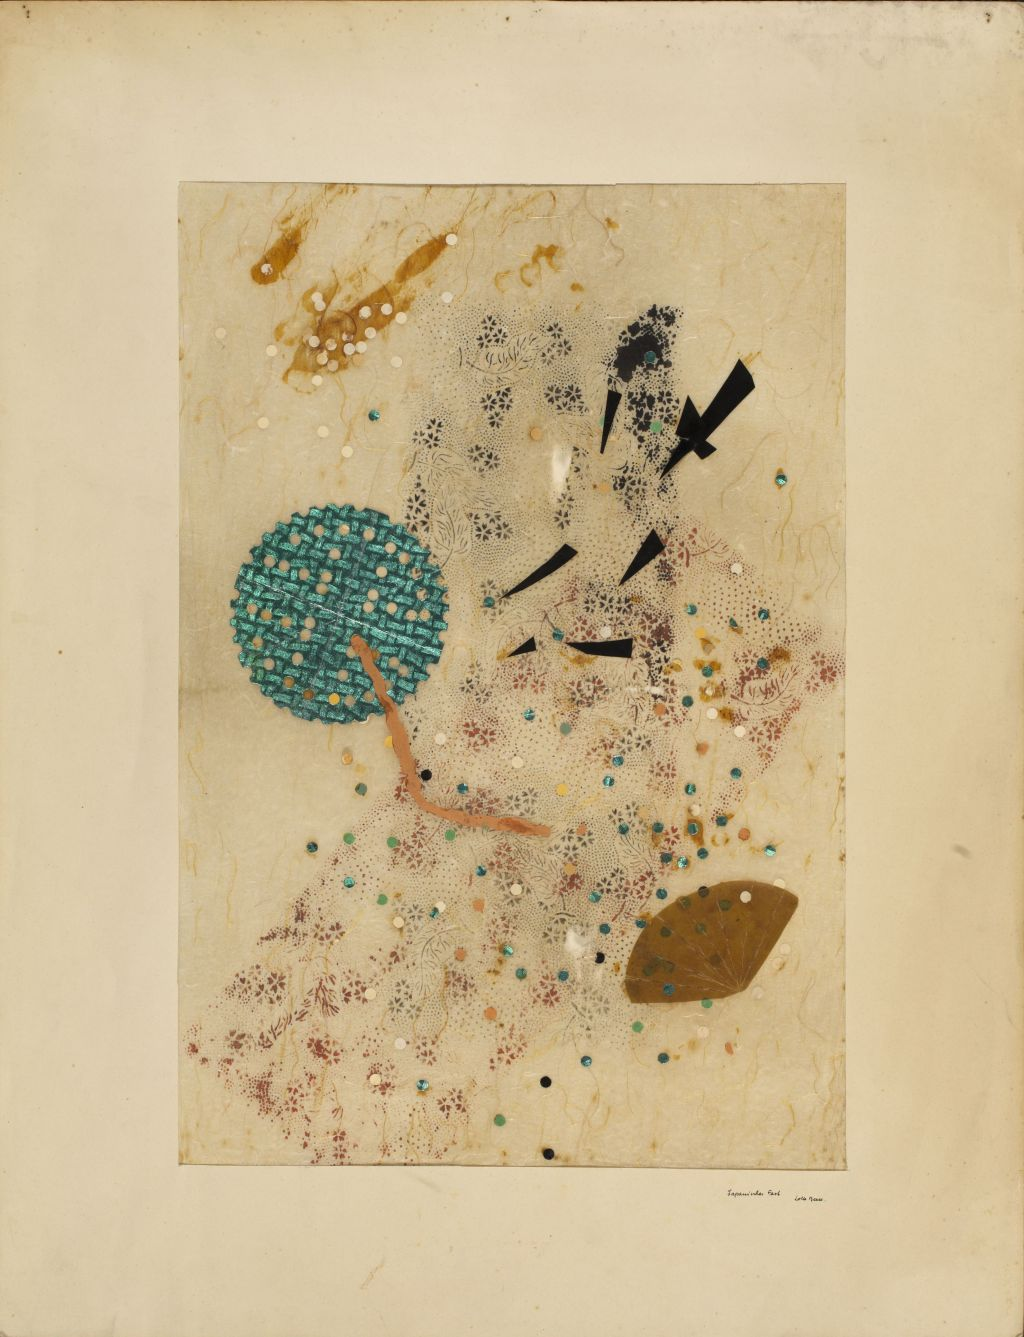 Lotte Stam-Beese, Japanese Party, 1927. Collection Het Nieuwe Instituut, STAM t16